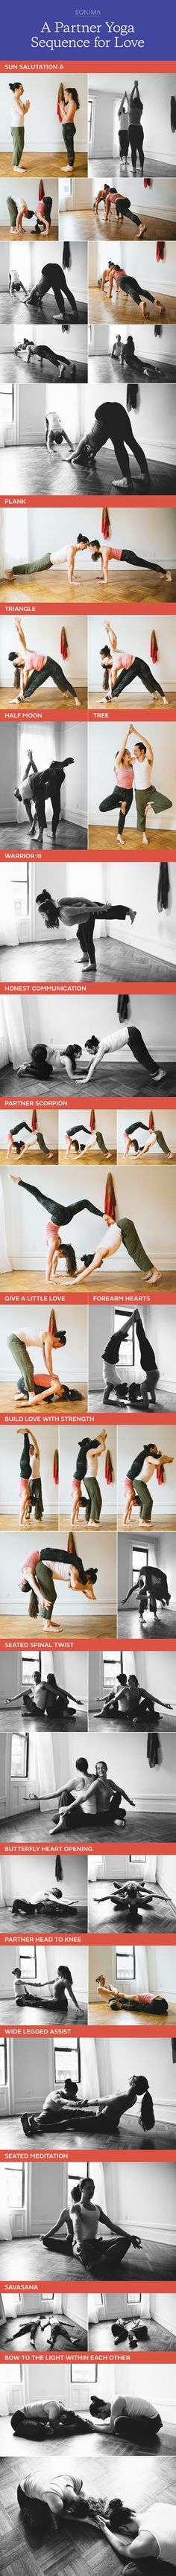 Explore this beautiful partner yoga sequence of heart opening and strengthening postures to experience the joy of a loving support in the yoga practice.